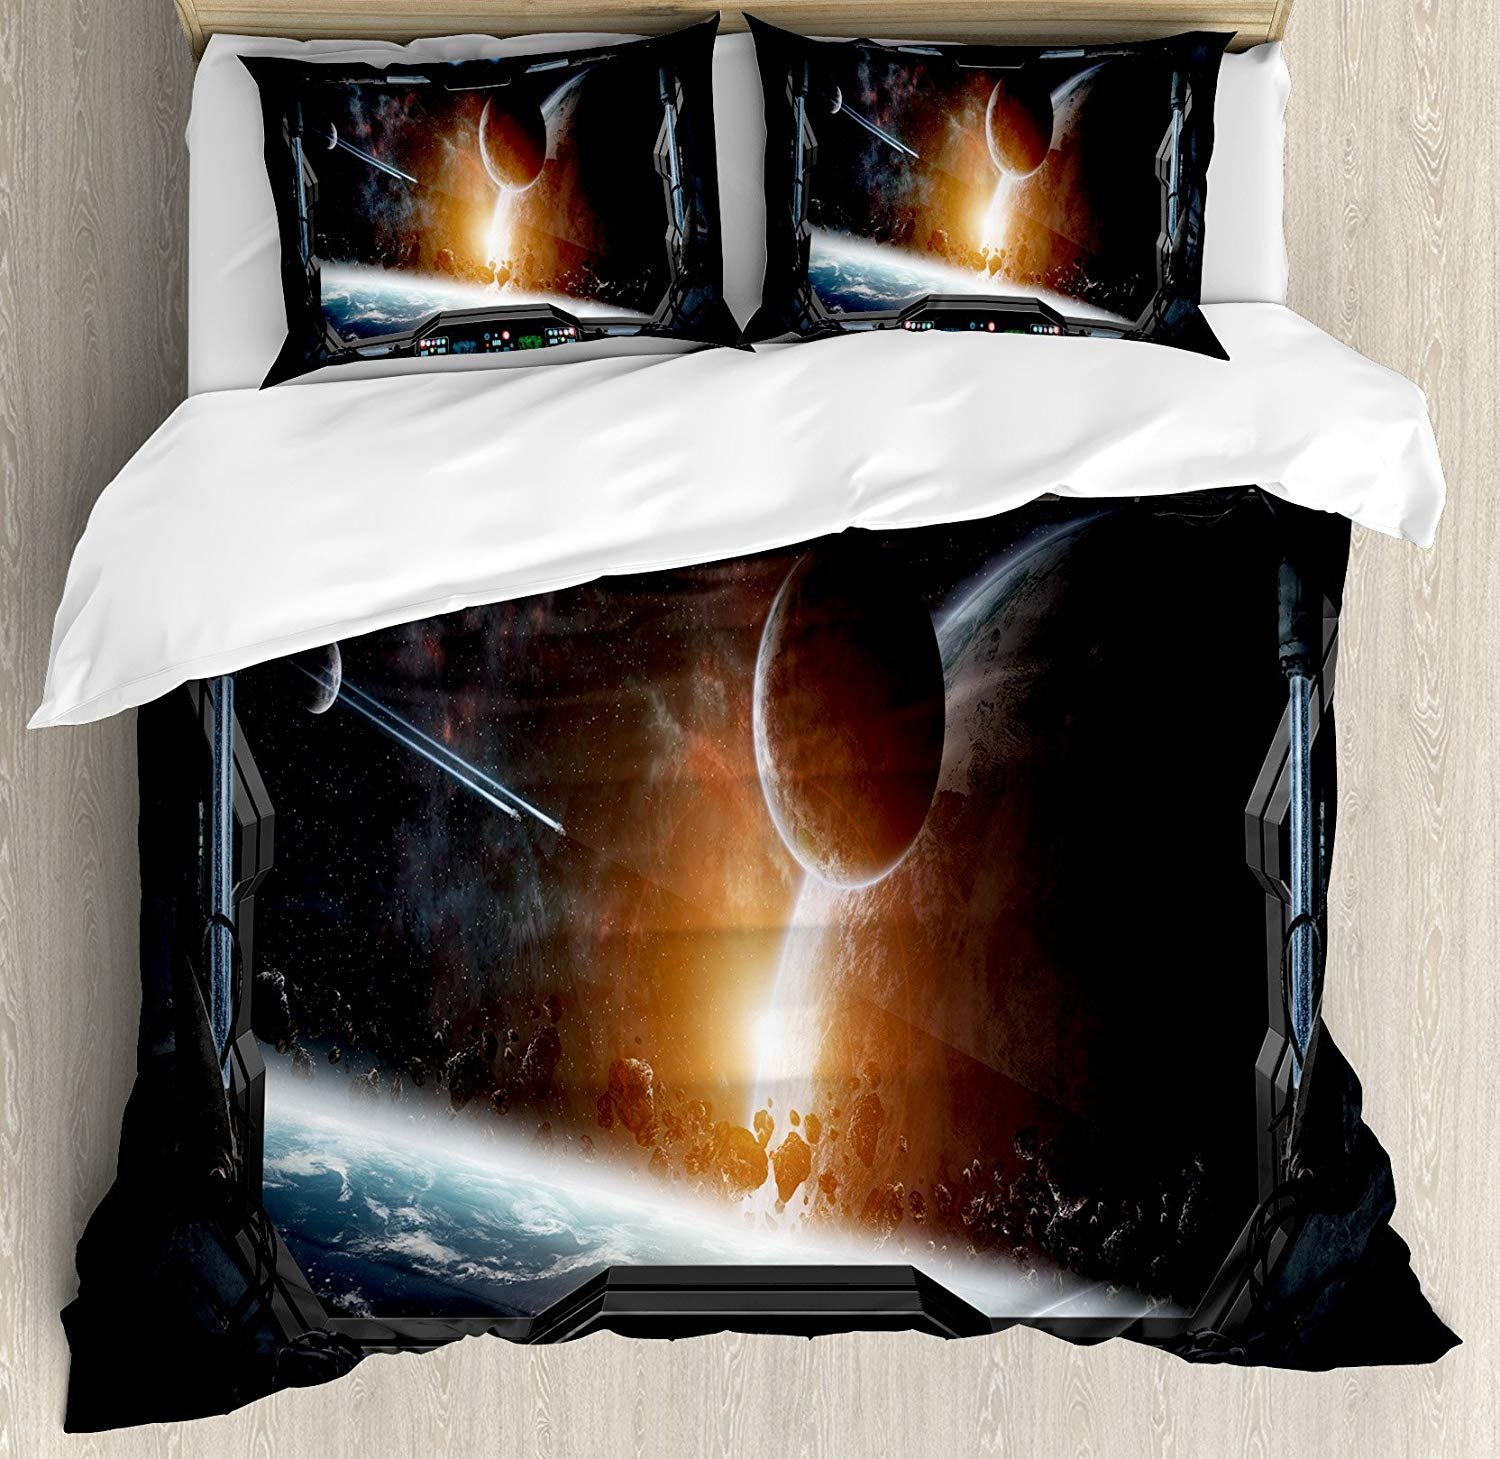 Full Size Outer Space 3 PCS Duvet Cover Set, Scenery of Planets from The Window of a Shuttle Bodies Astronaut Space Station, Bedding Set Bedspread for Children/Teens/Adults/Kids, Gray Orange